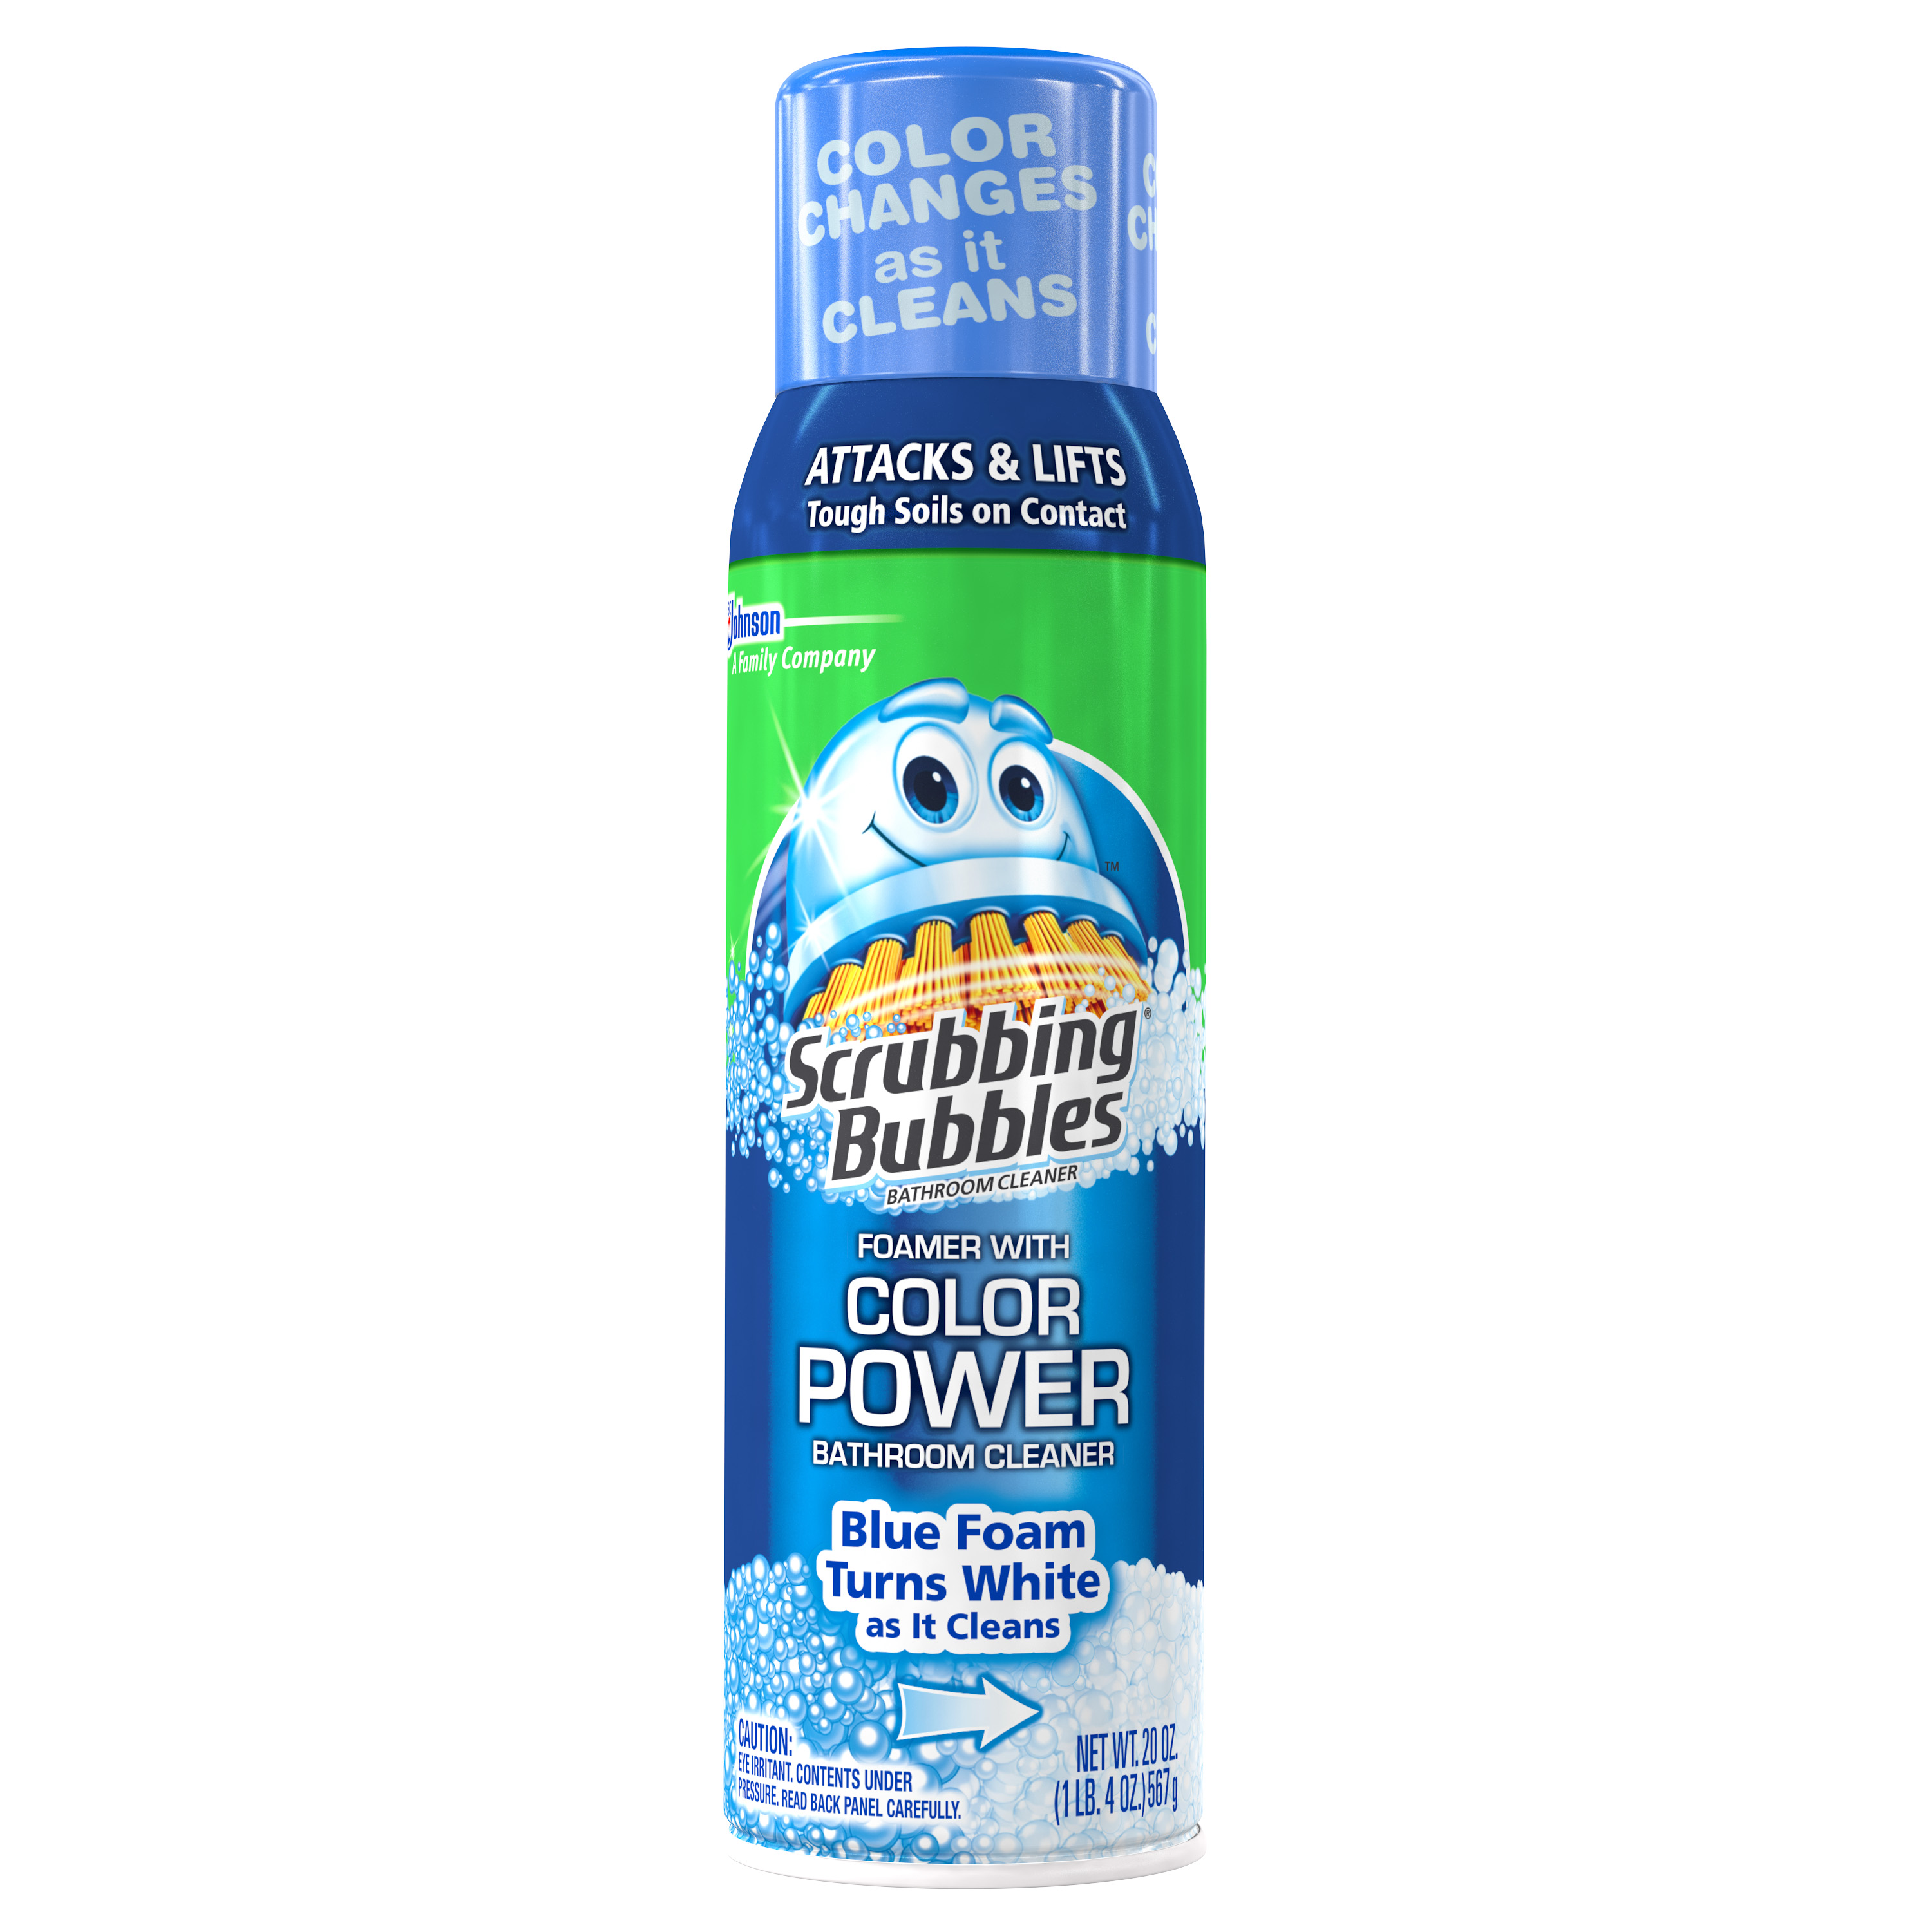 Scrubbing Bubbles® Bathroom Cleaner with Color Power Technology